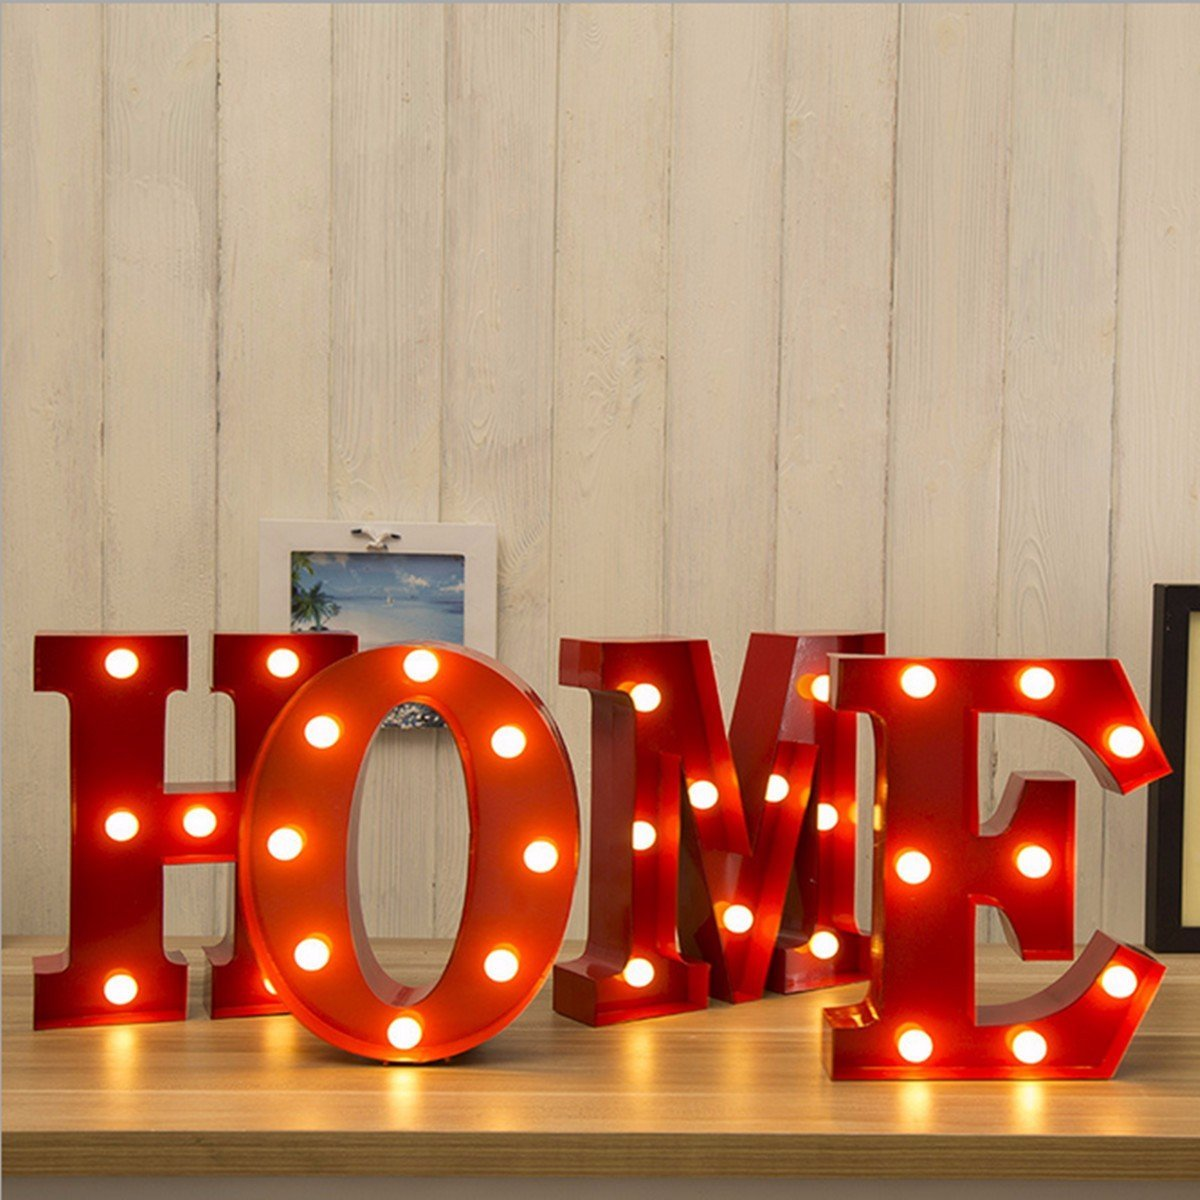 SOLMORE 23CM x 5.5CM LED Letter Light DIY Vintage Metal Sign Carnival Wall Marquee Lights Decoration M 6